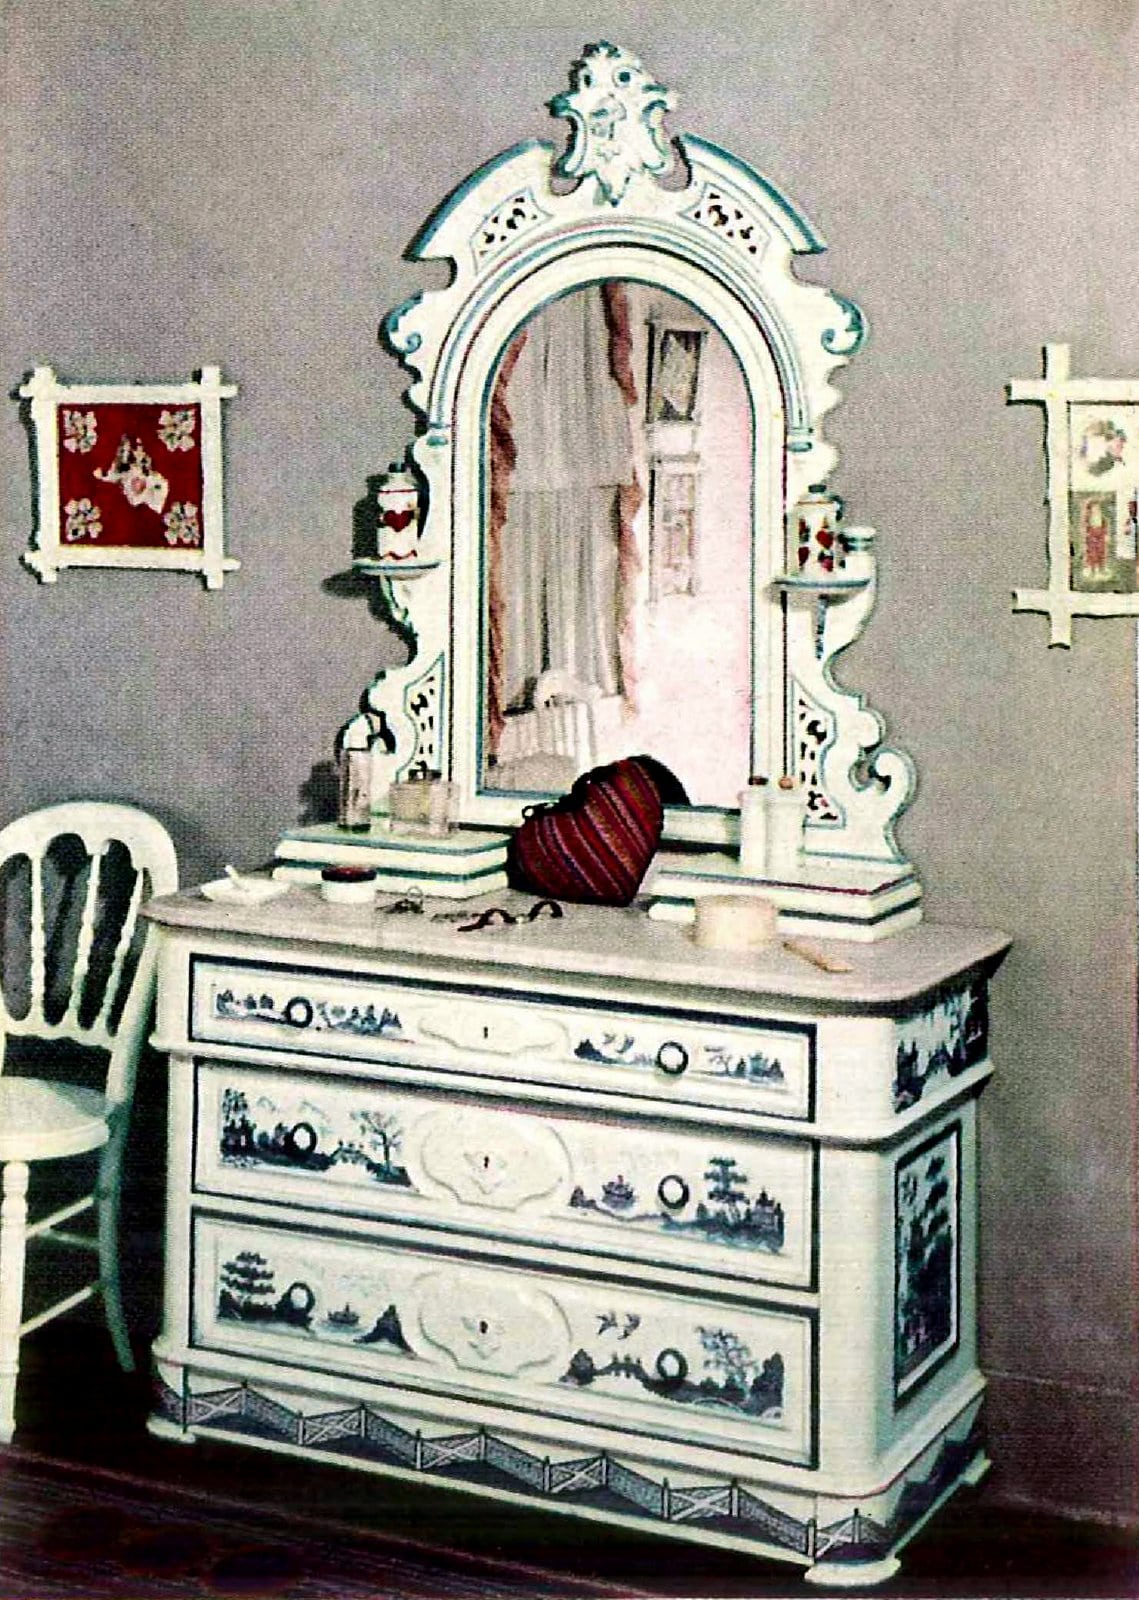 Chinese picture-fable designs painted on vintage bedroom furniture (2)